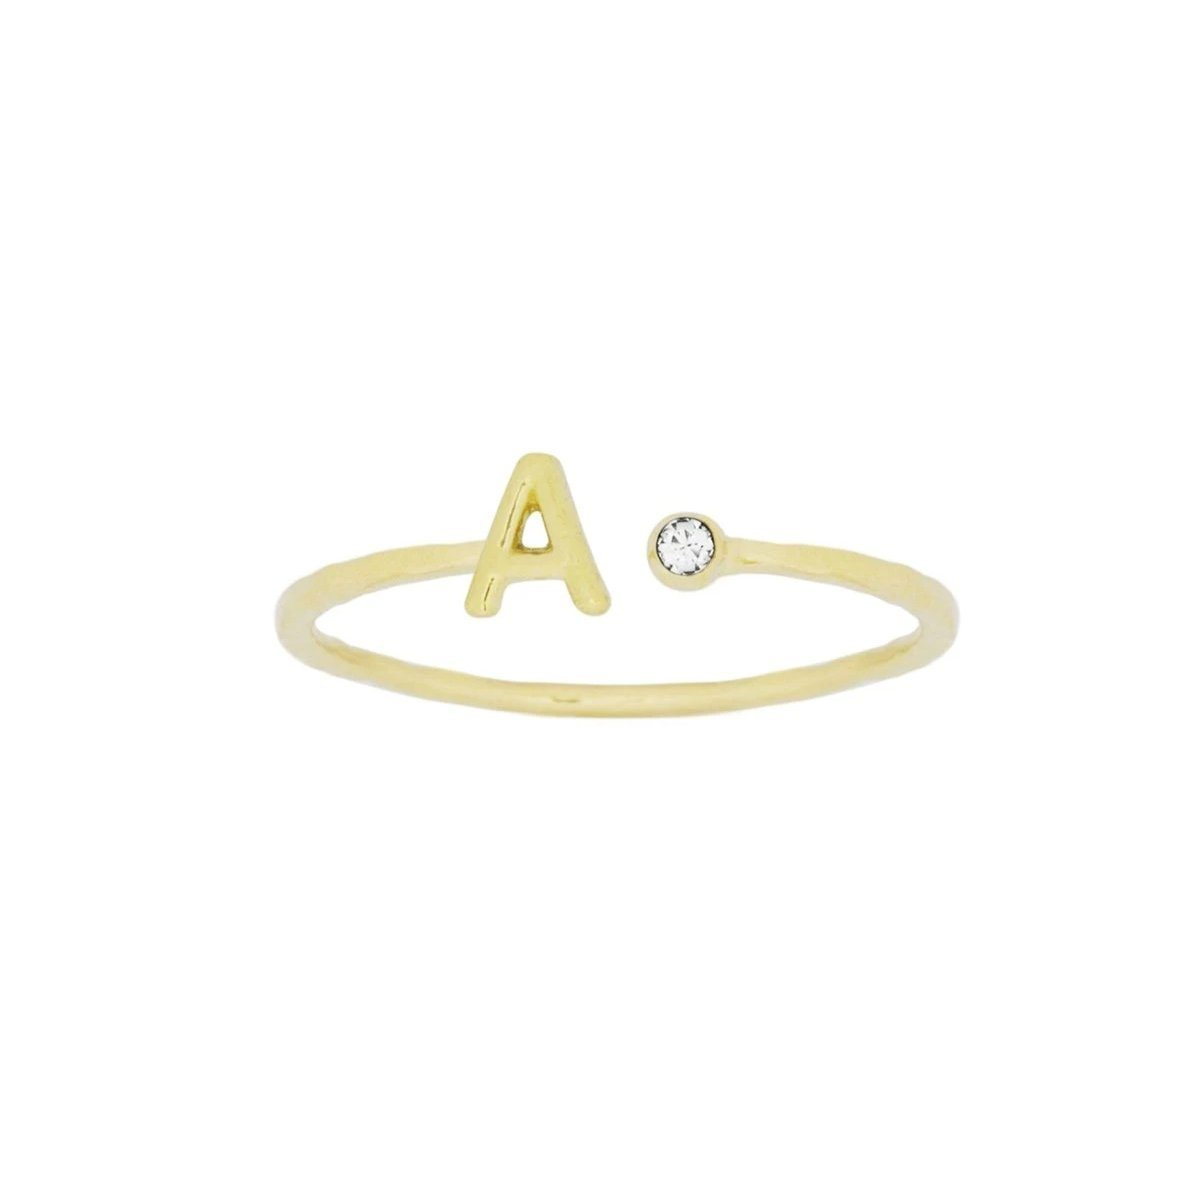 Dainty, handmade Initial A Letter Ring by Katie Dean Jewelry, shown against a white background